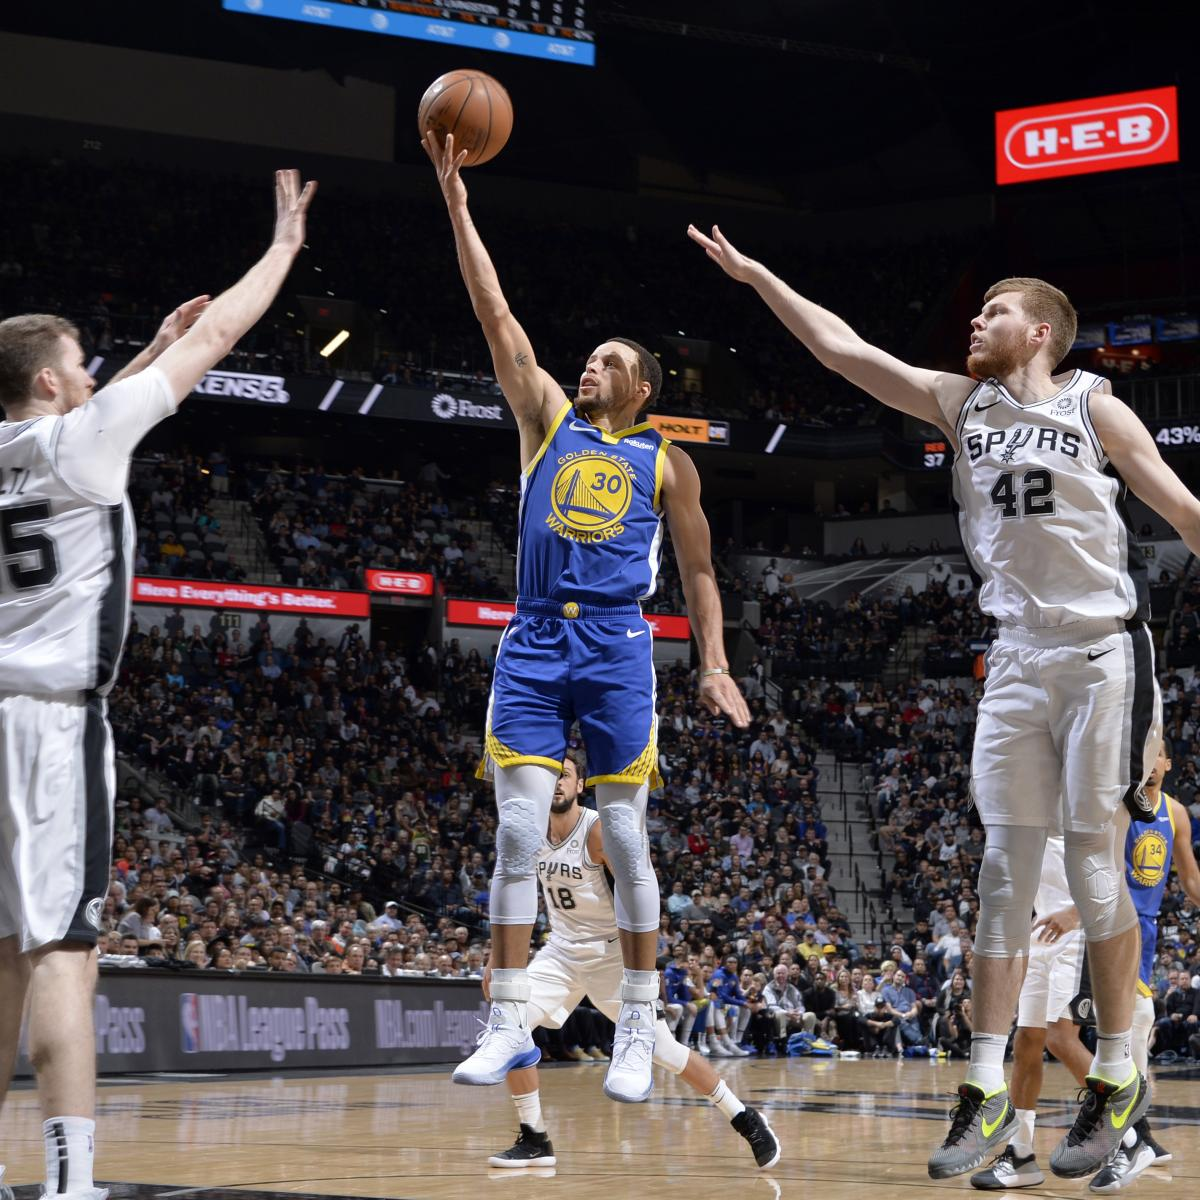 The San Antonio Spurs continued their ascent up the Western Conference standings with a 111-105 victory over the Golden State Warriors in a potential playoff preview Monday at AT&T Center...